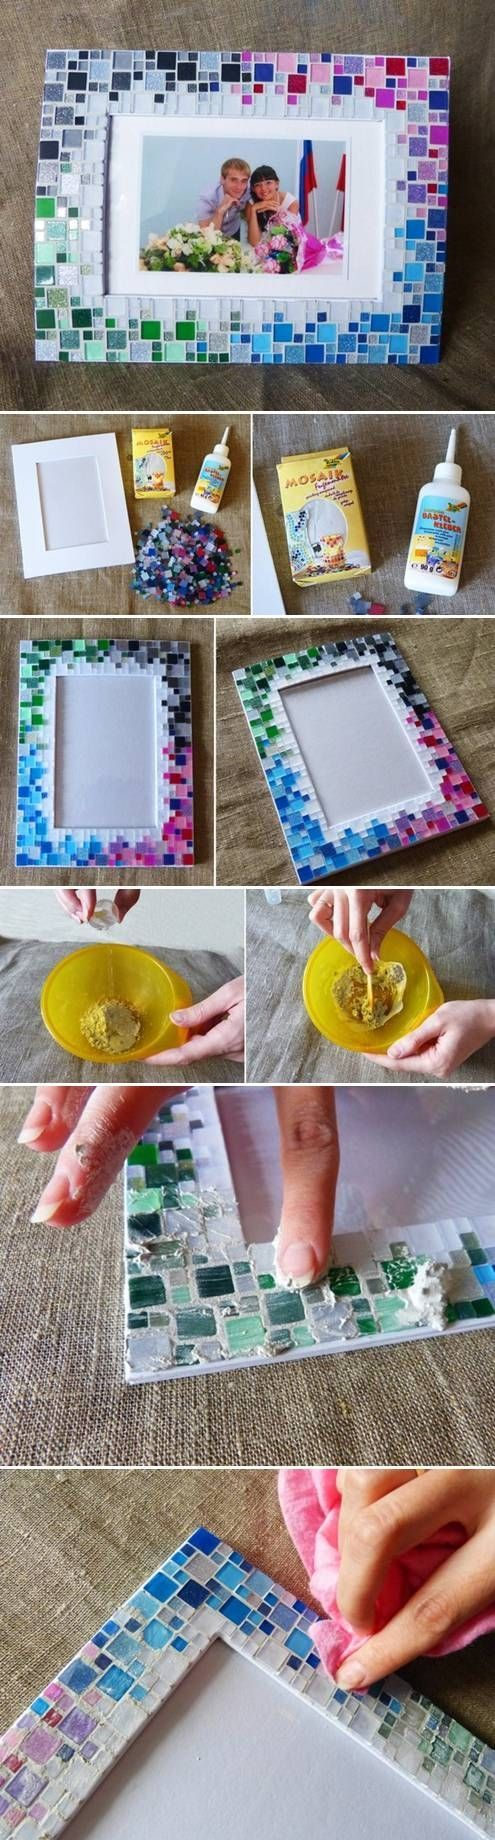 DIY Colorful Mosaic Picture Frame Pictures, Photos, and Images for Facebook, Tumblr, Pinterest, and Twitter